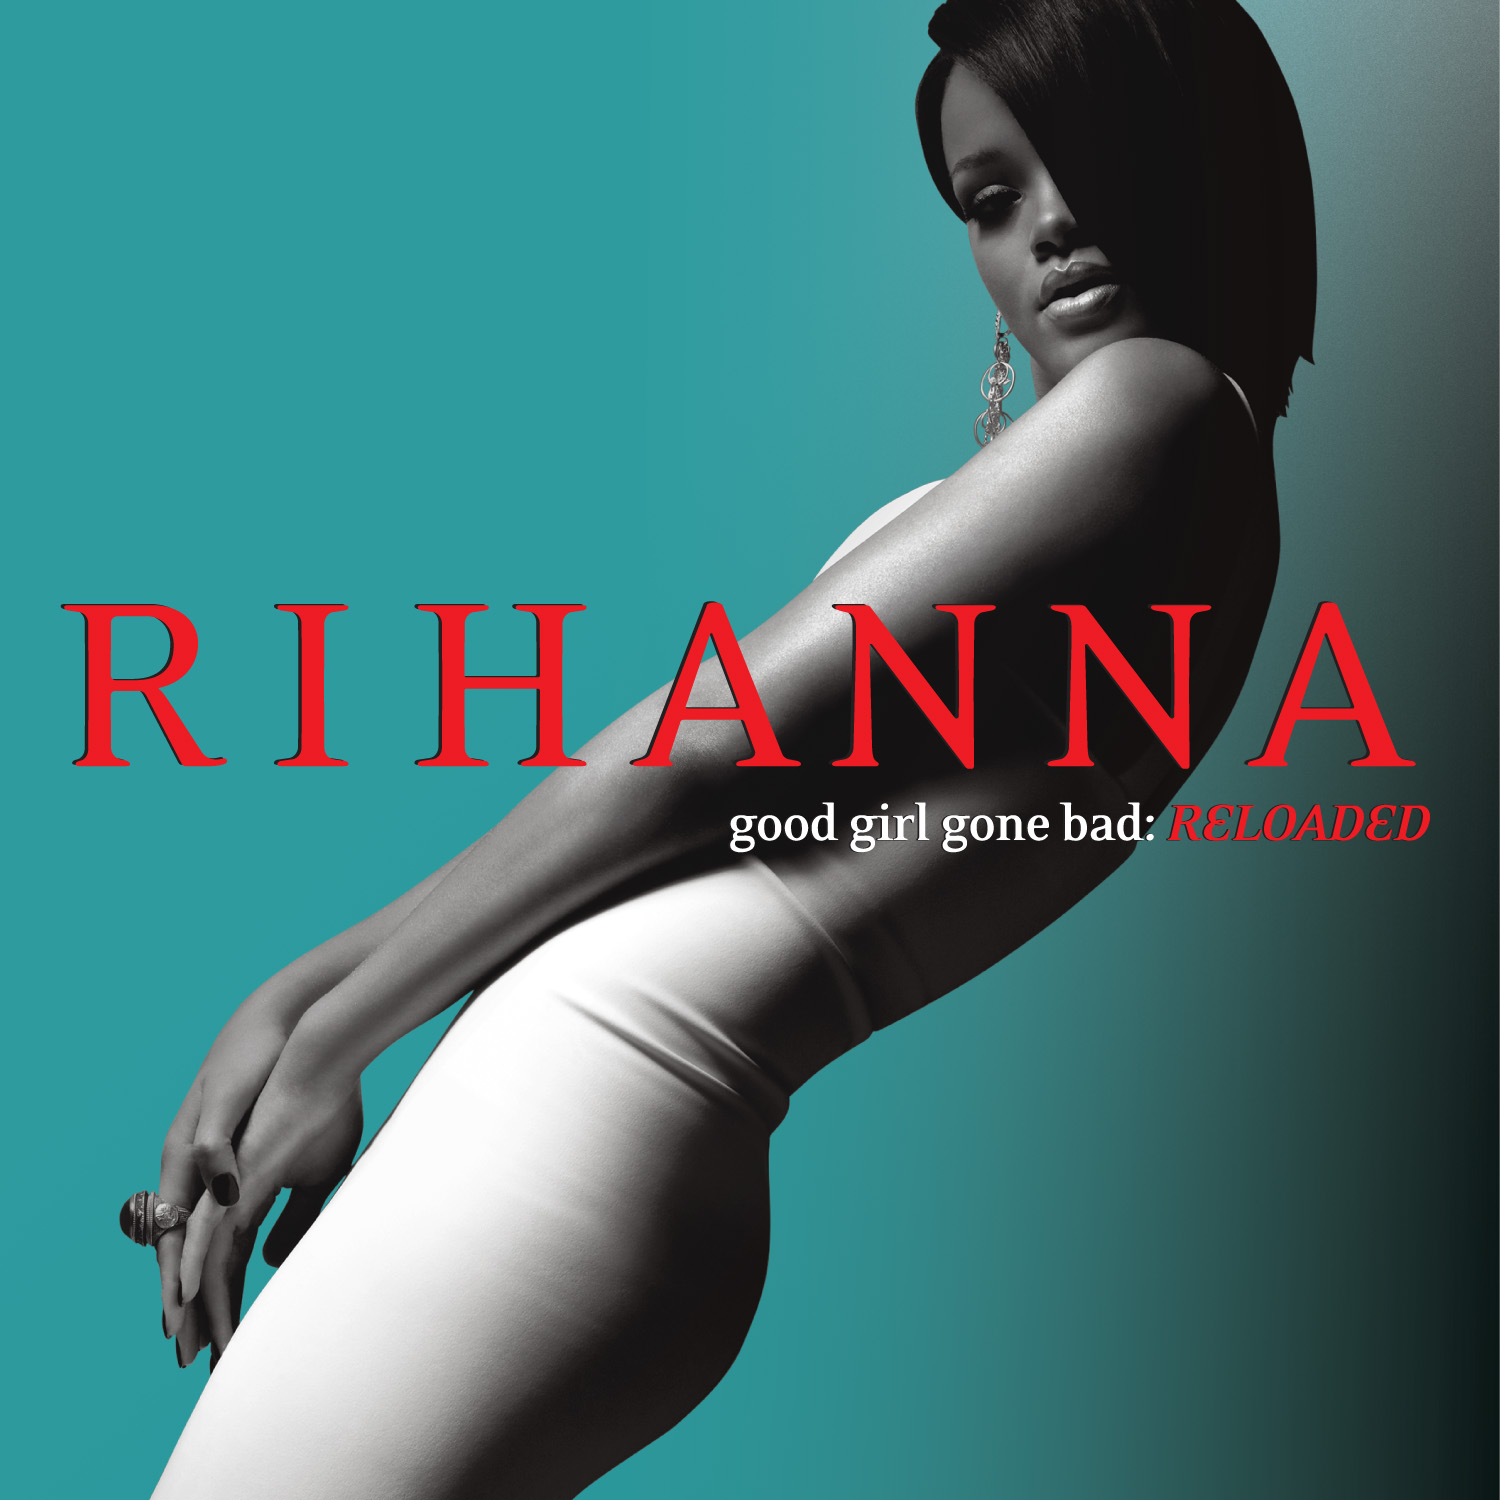 http://2.bp.blogspot.com/_IByDaPF_3zc/TDeAMFoAdeI/AAAAAAAAATw/DOWIsEMaKkY/s1600/Rihanna-Good-Girl-Gone-Bad-Reloaded+(cover+album).jpg